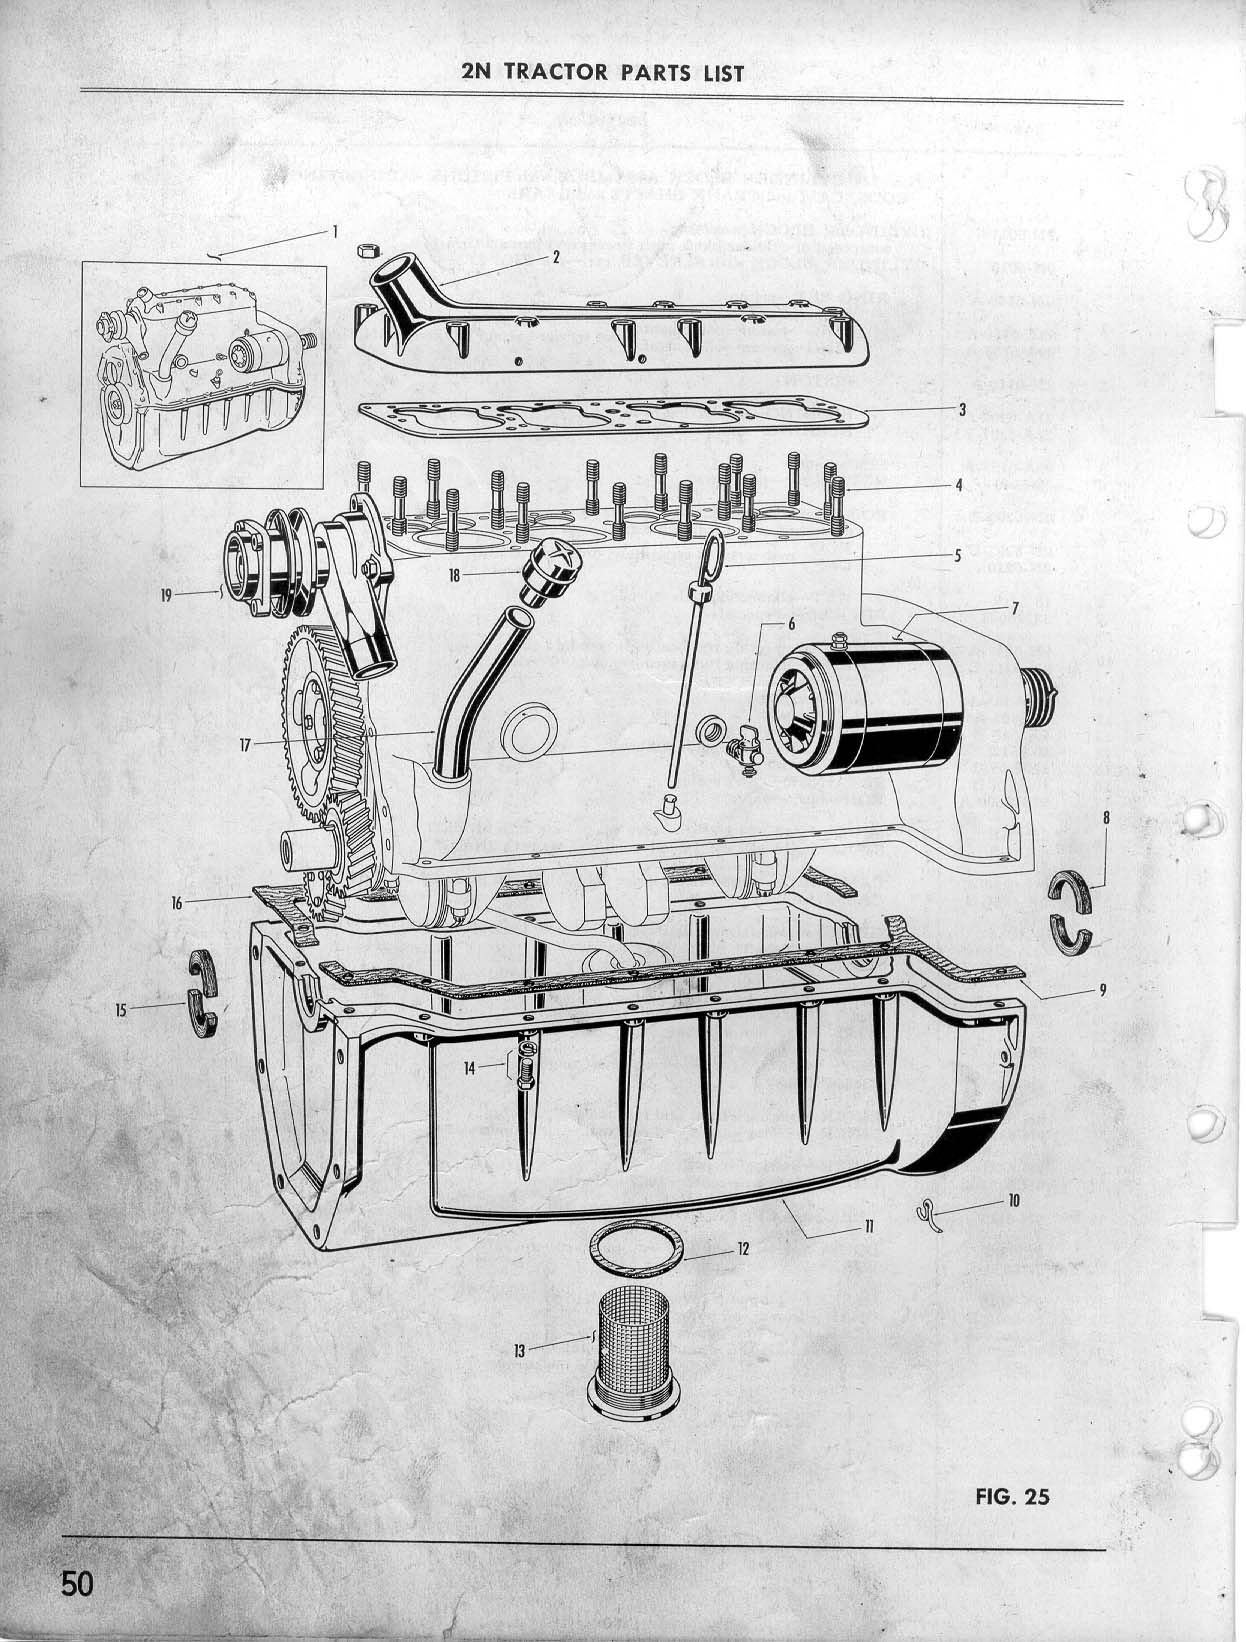 9n Ford Tractor Carburetor Diagram : Ford tractor holley carburetor diagram free engine